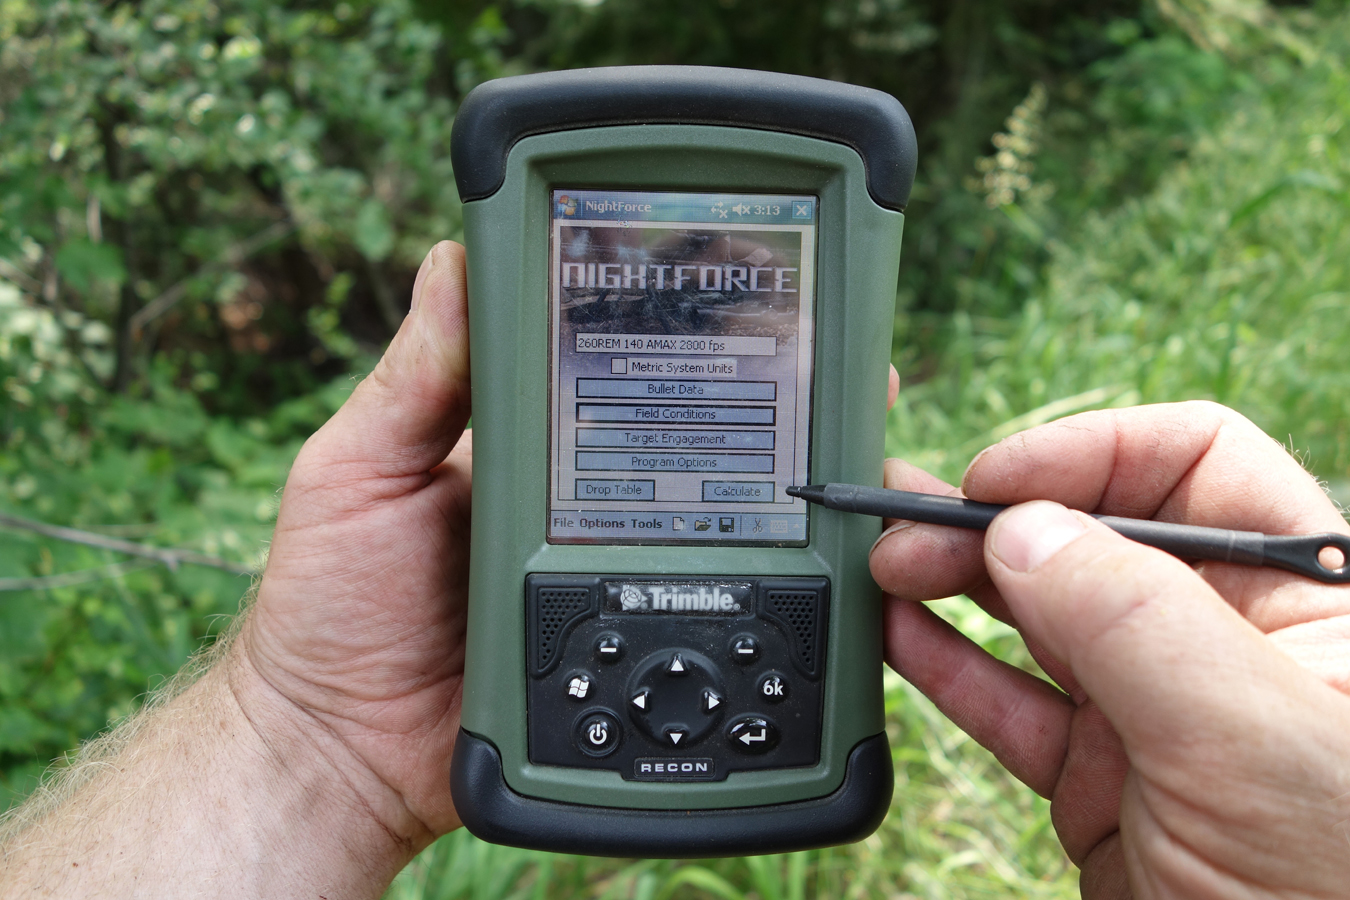 Trimble Recon with Nightforce Exbal ballistic calculator